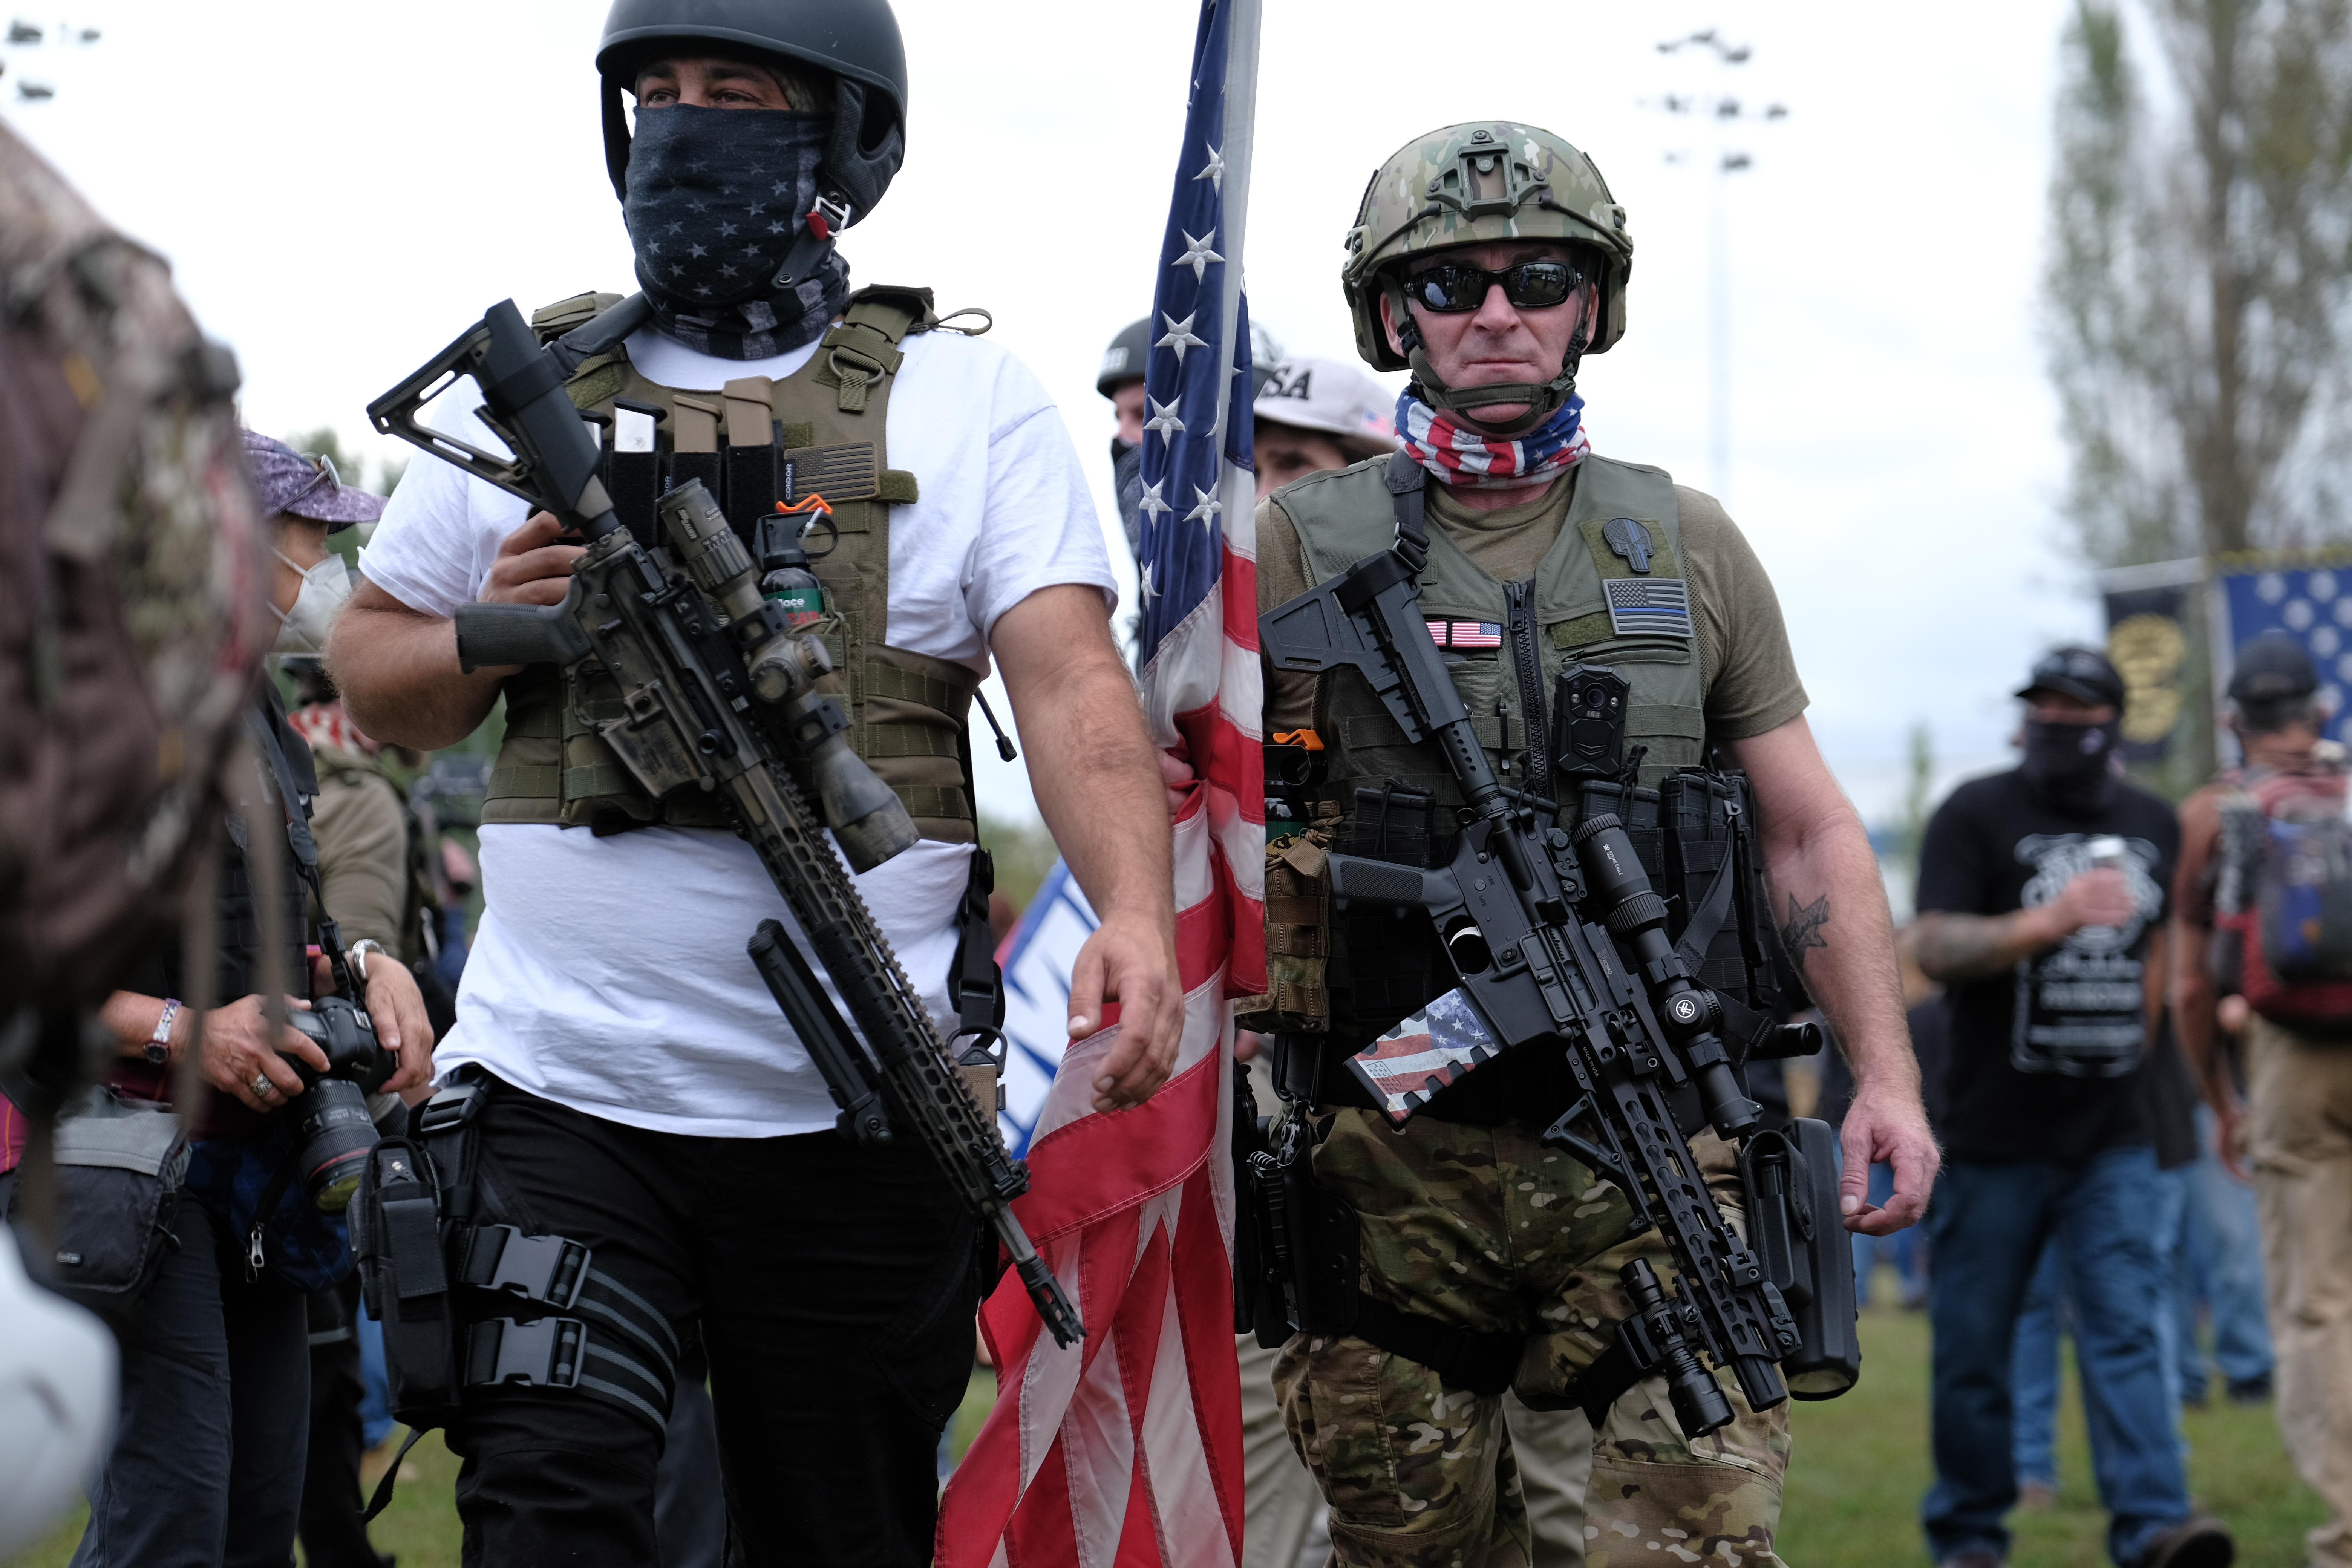 Proud Boys carry assault rifles as they gather in Portland, Ore., at Delta Park on September 26, 2020, in support of Kenosha shooter Kyle Rittenhouse and Aaron 'Jay' Danielson who was shot dead by an antifascist protester during the ongoing Black Lives Matter protests in the city. (Photo by Alex Milan Tracy/Sipa USA)No Use UK. No Use Germany.